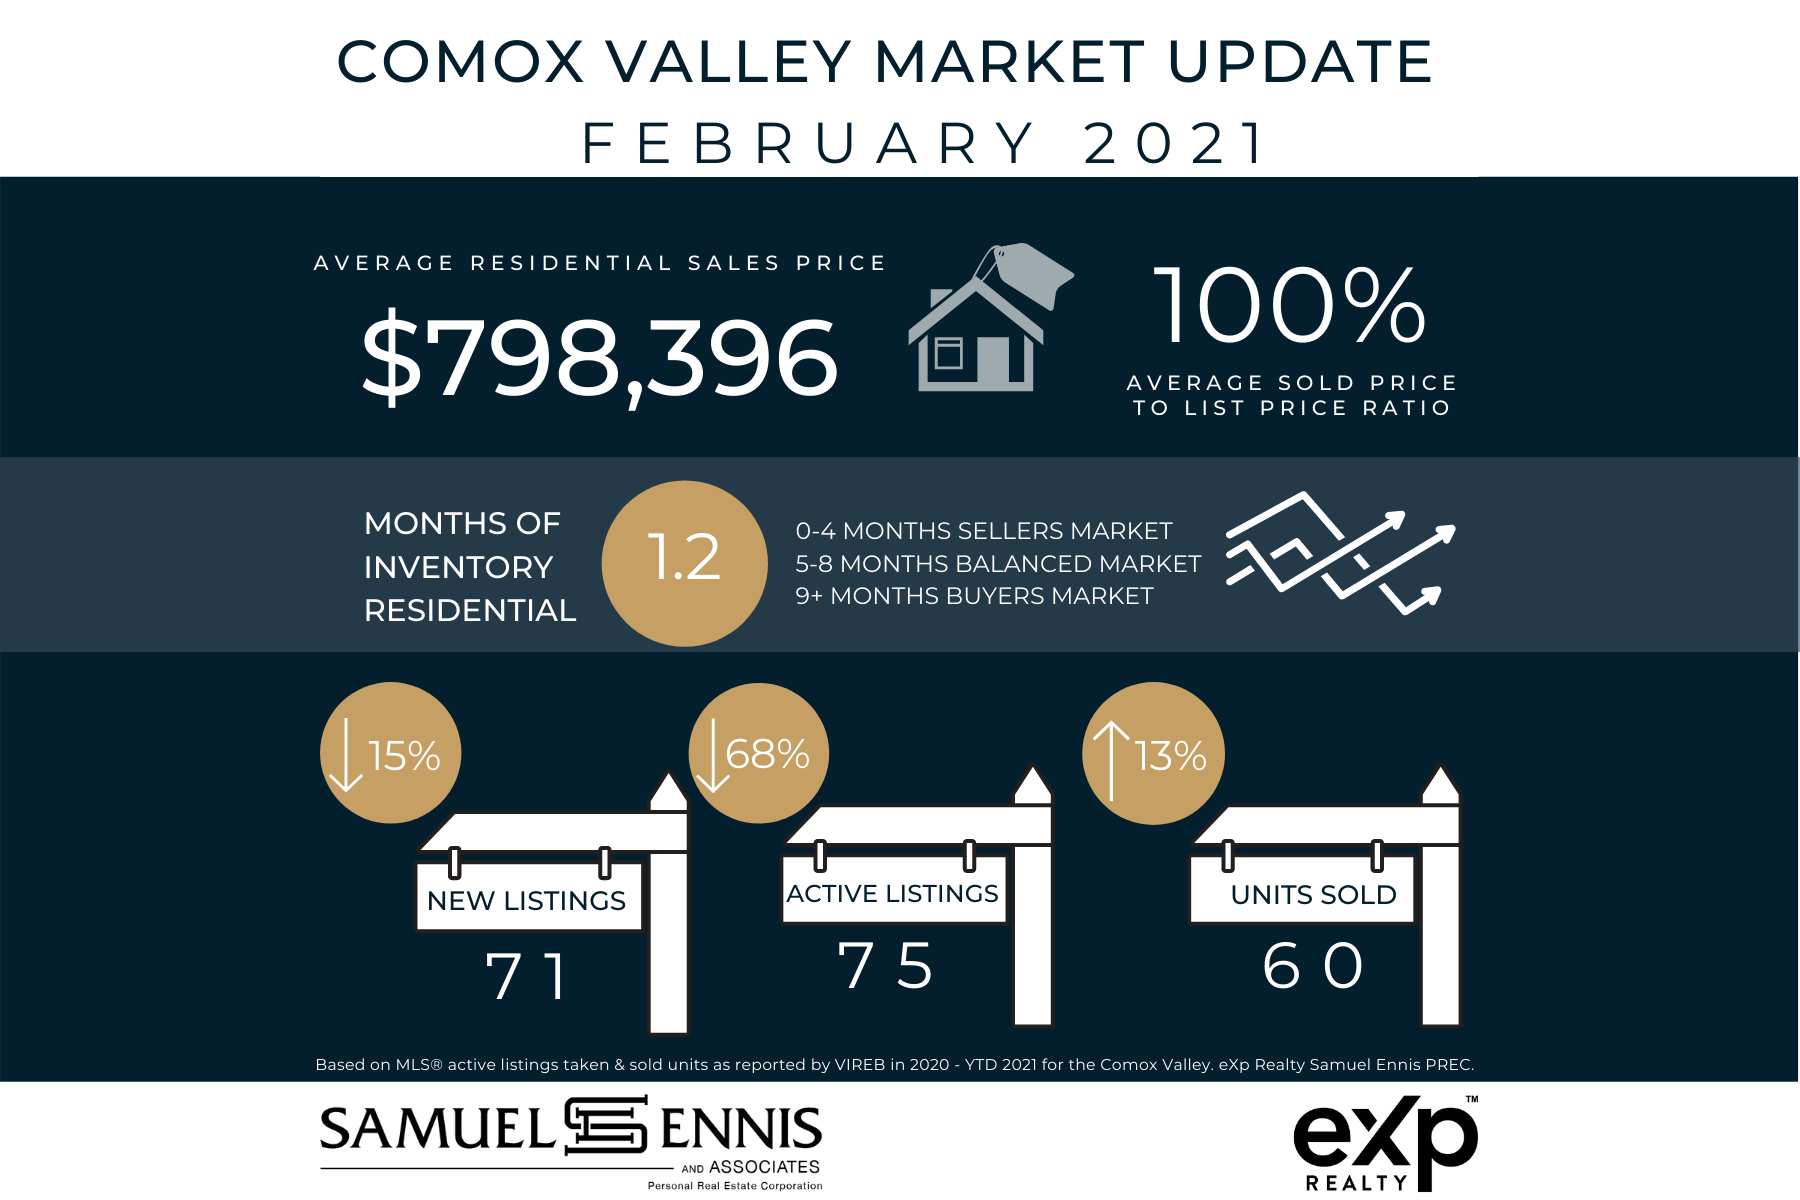 Comox Valley Real Estate Market Update - February 2021